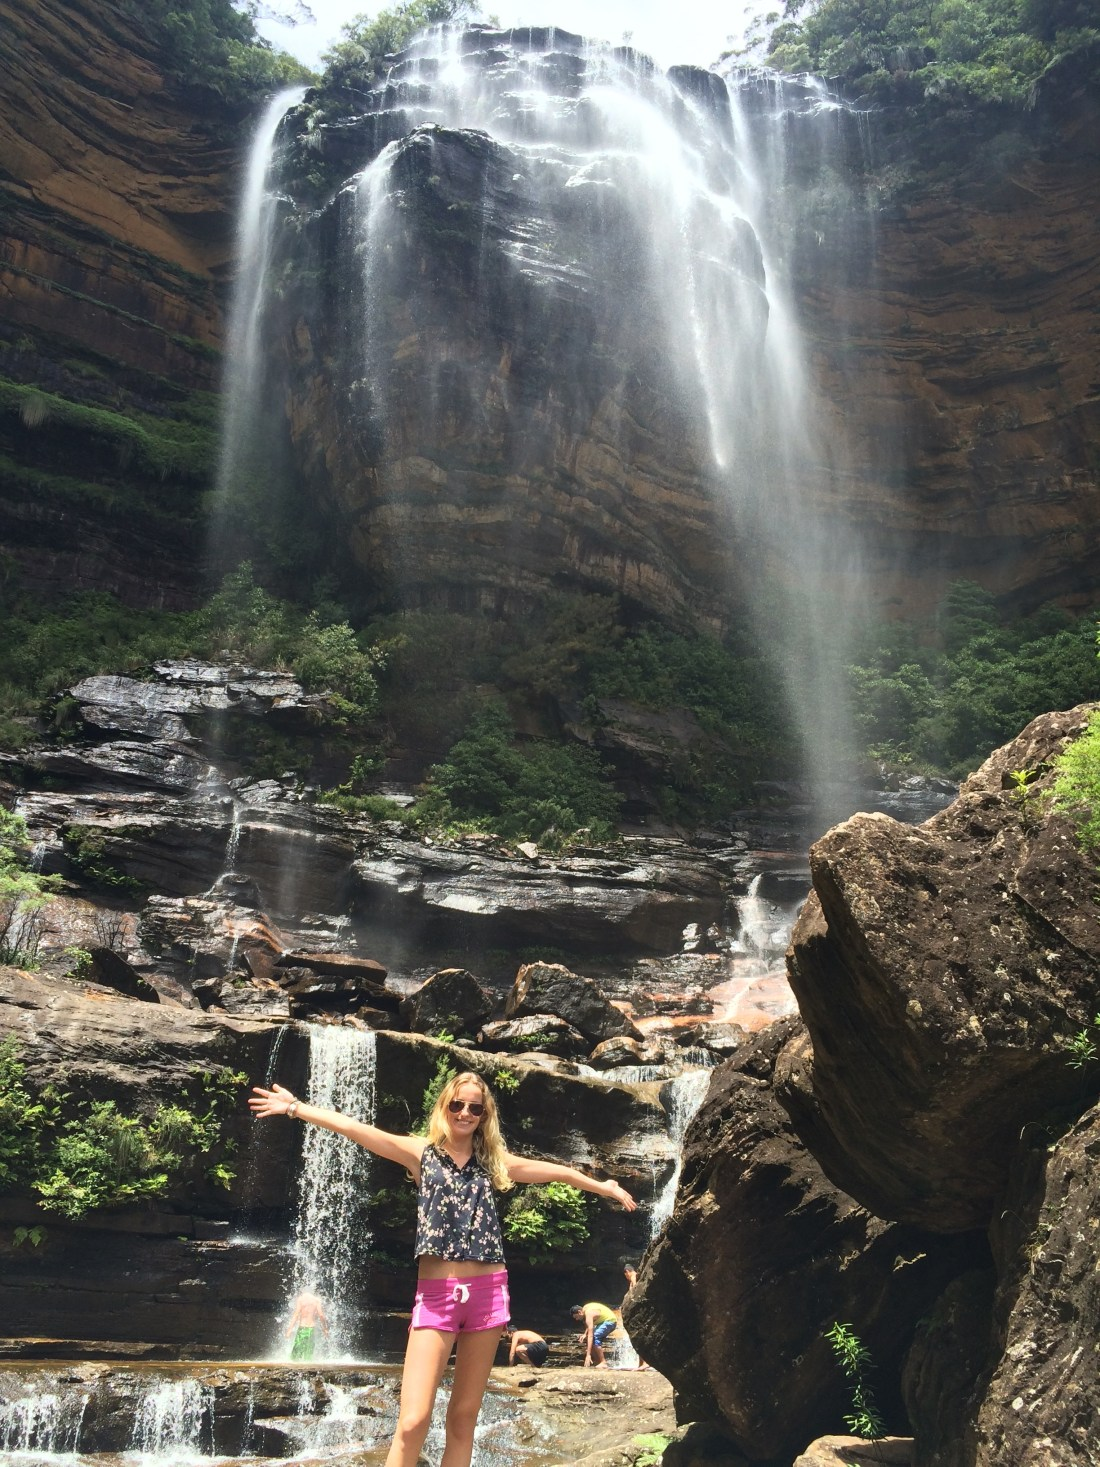 Wentworth Falls from Below